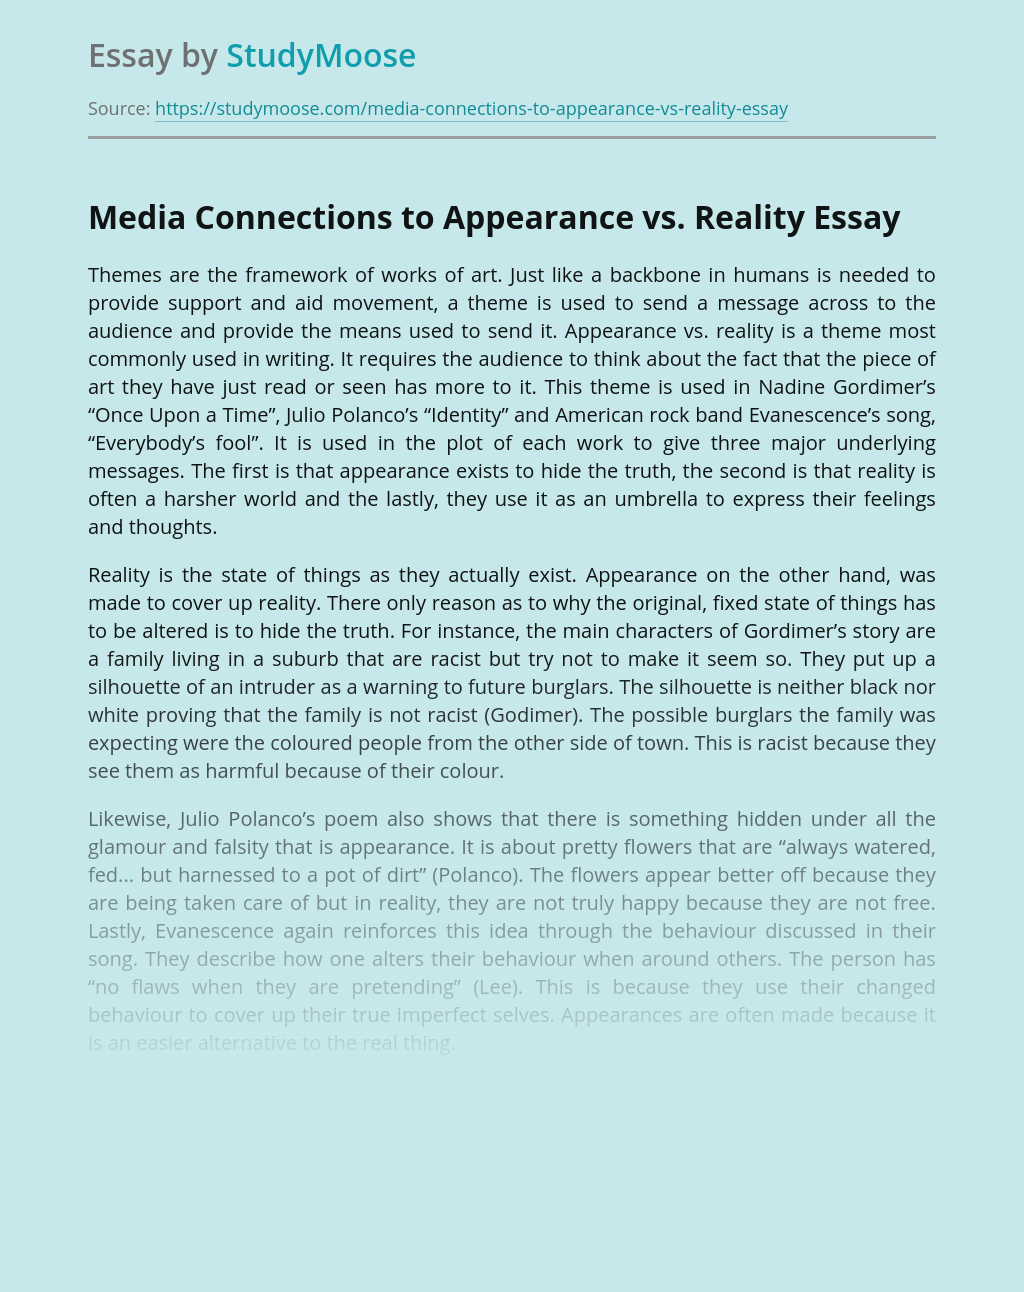 Media Connections to Appearance vs. Reality